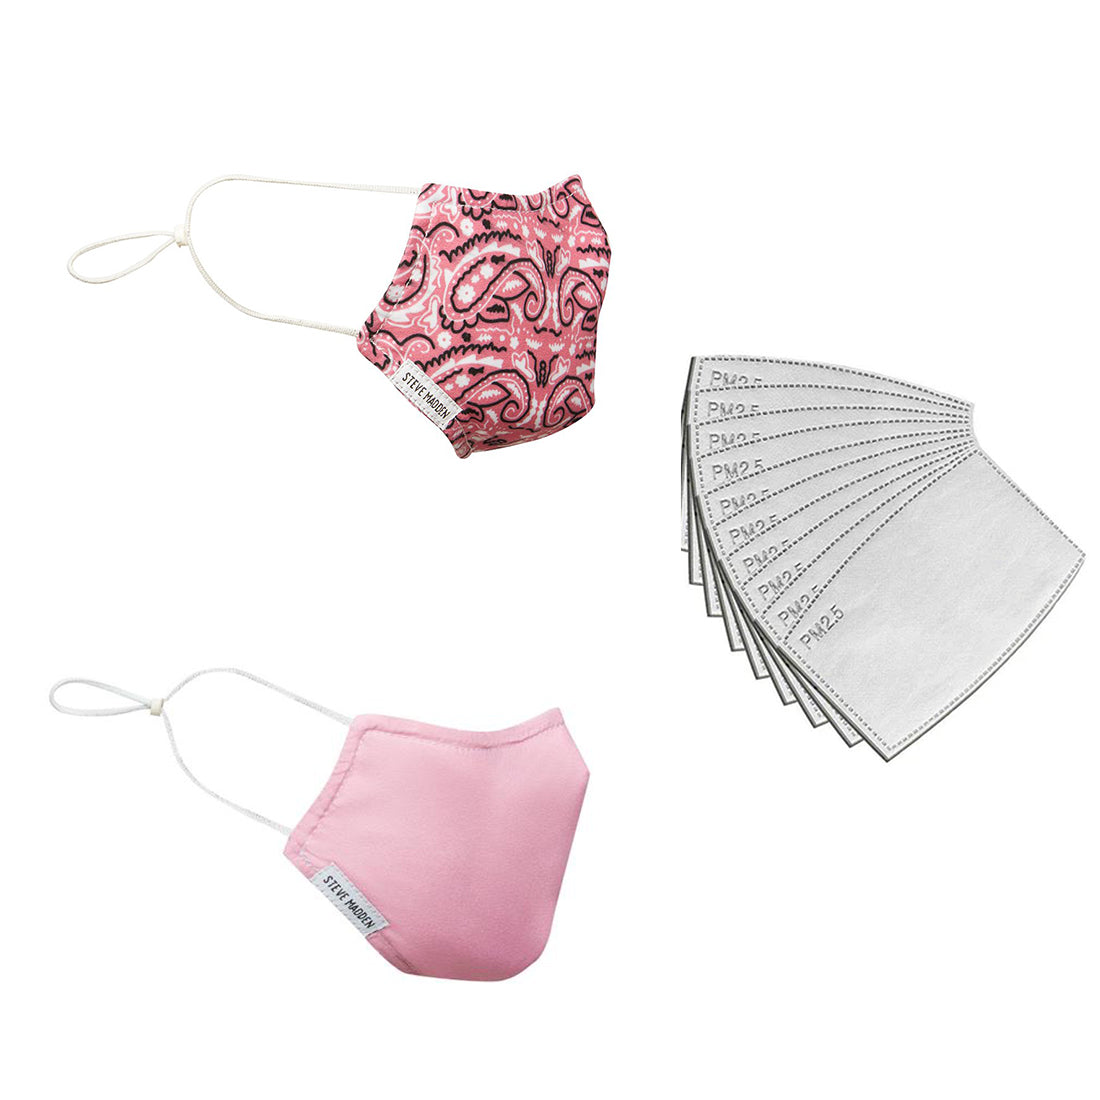 PINK BANDANA MASK + PINK MASK + MASK FILTER (PACK OF 20)